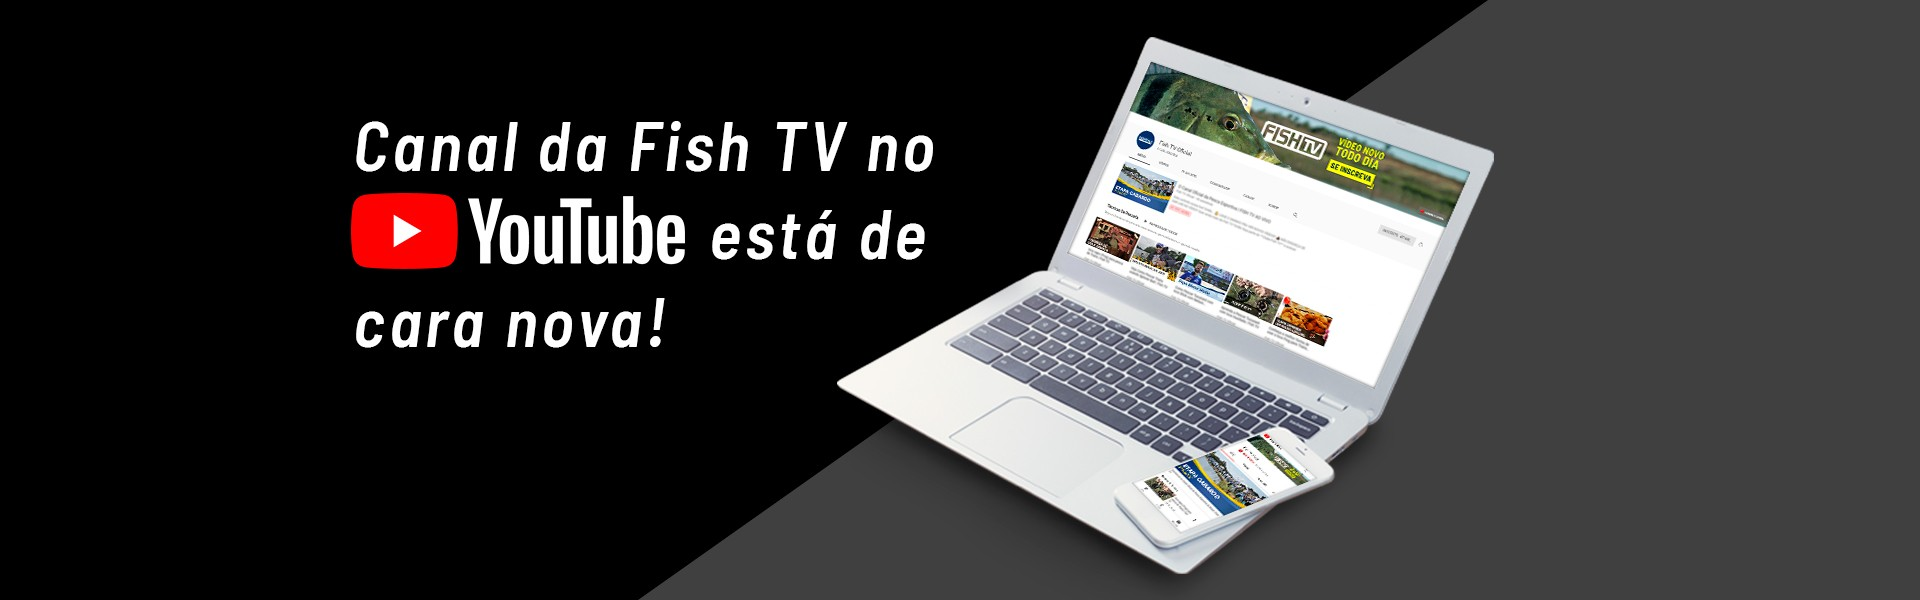 Canal do YouTube da Fish TV está de cara nova